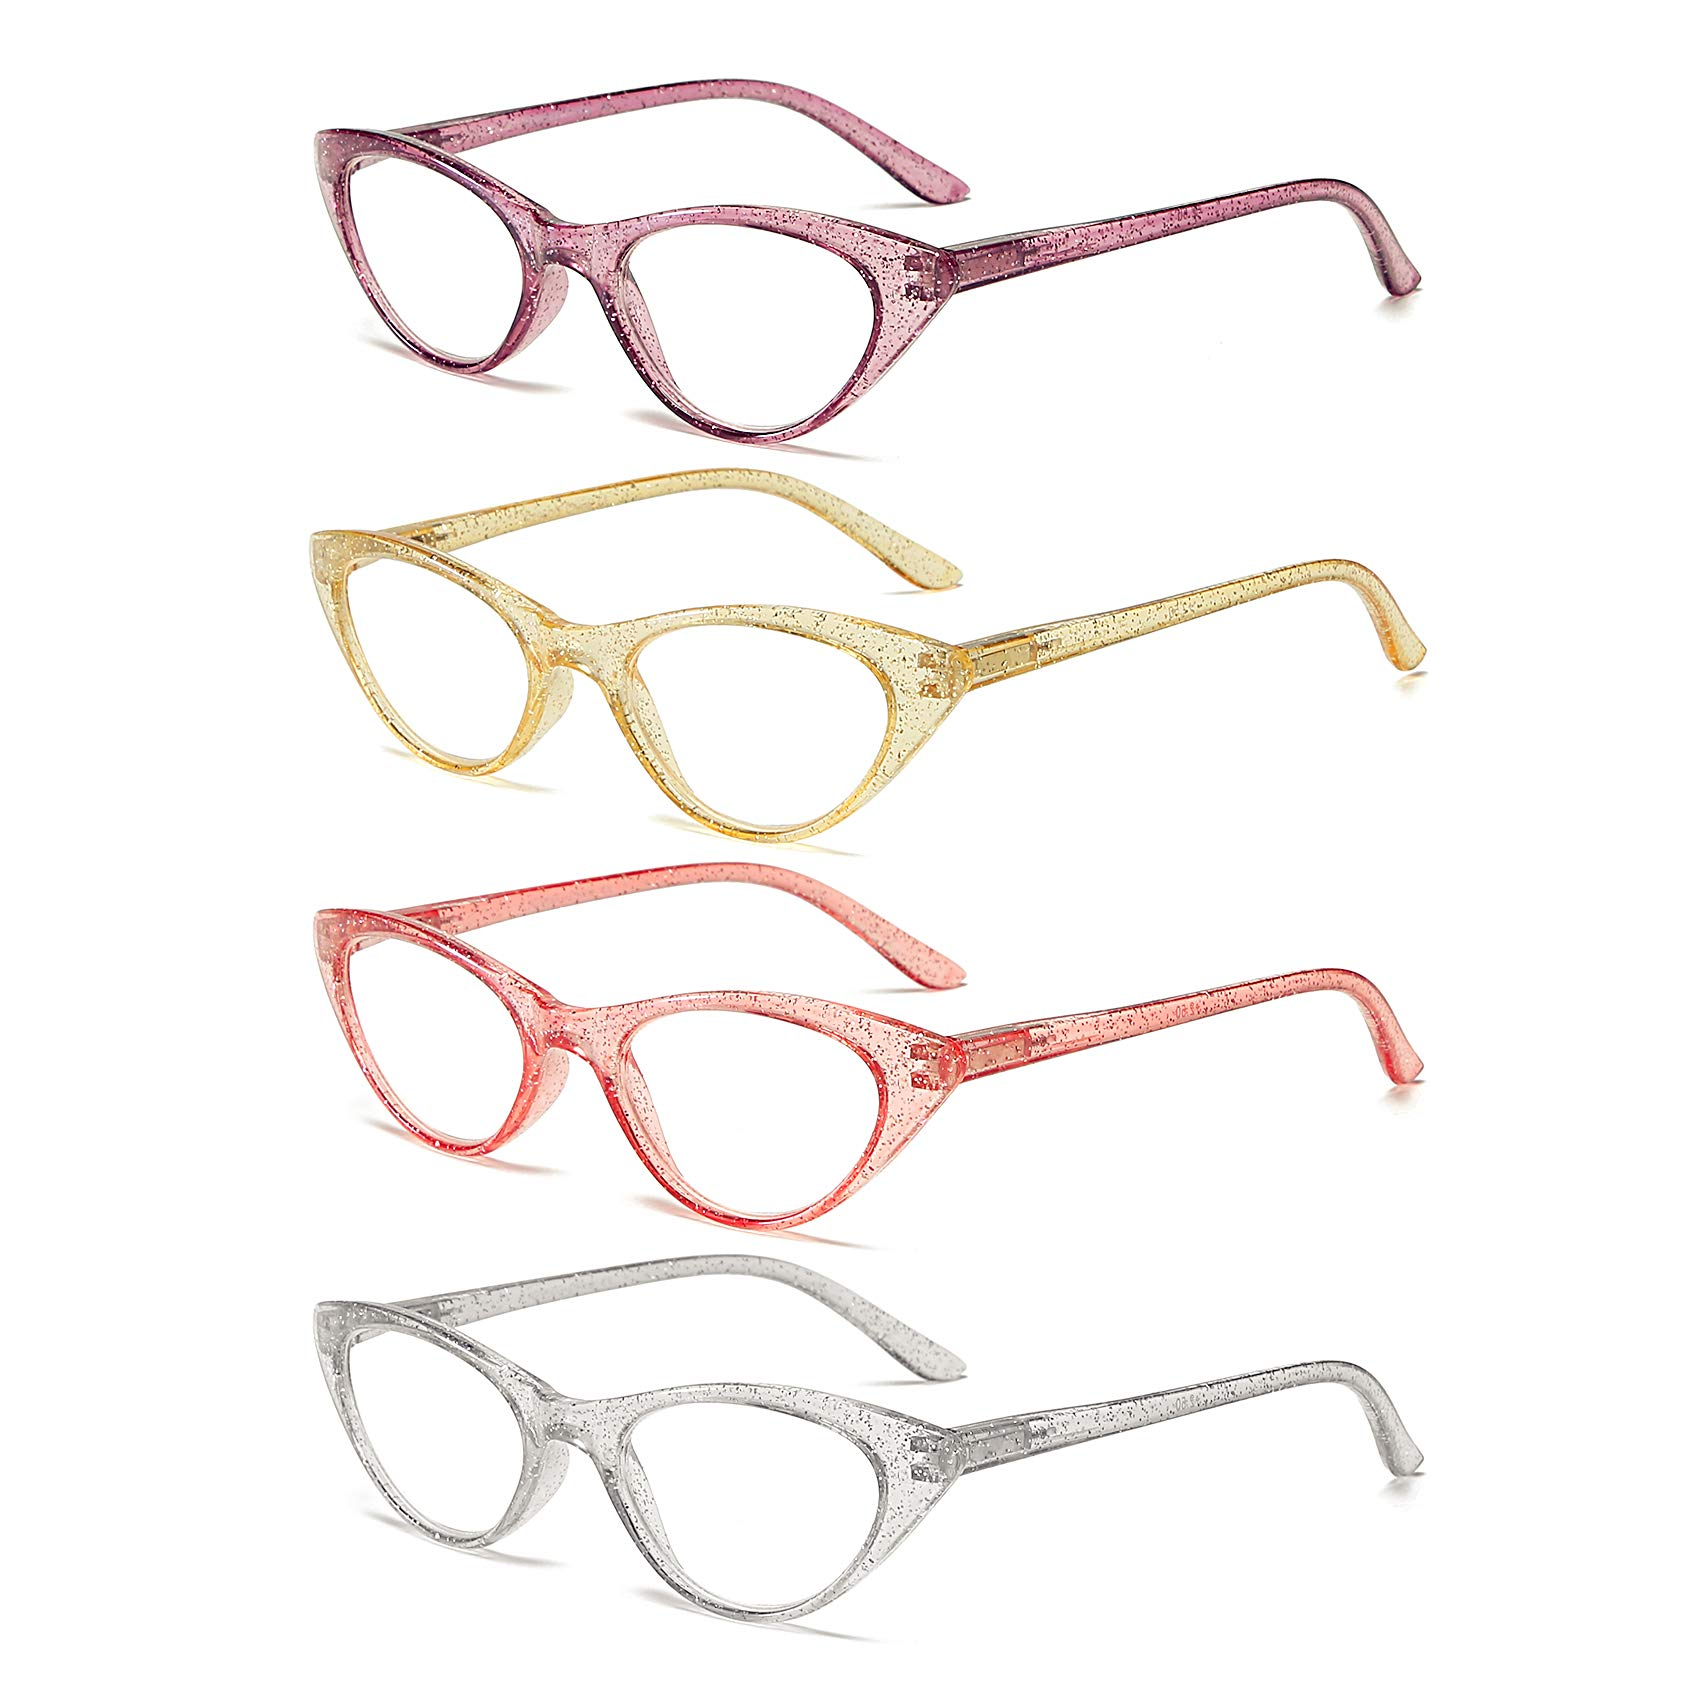 Reading Glasses by 100 CLASSIC 4 Pack Quality Fashion Colorful Readers for Women 2.00 by 100 CLASSIC